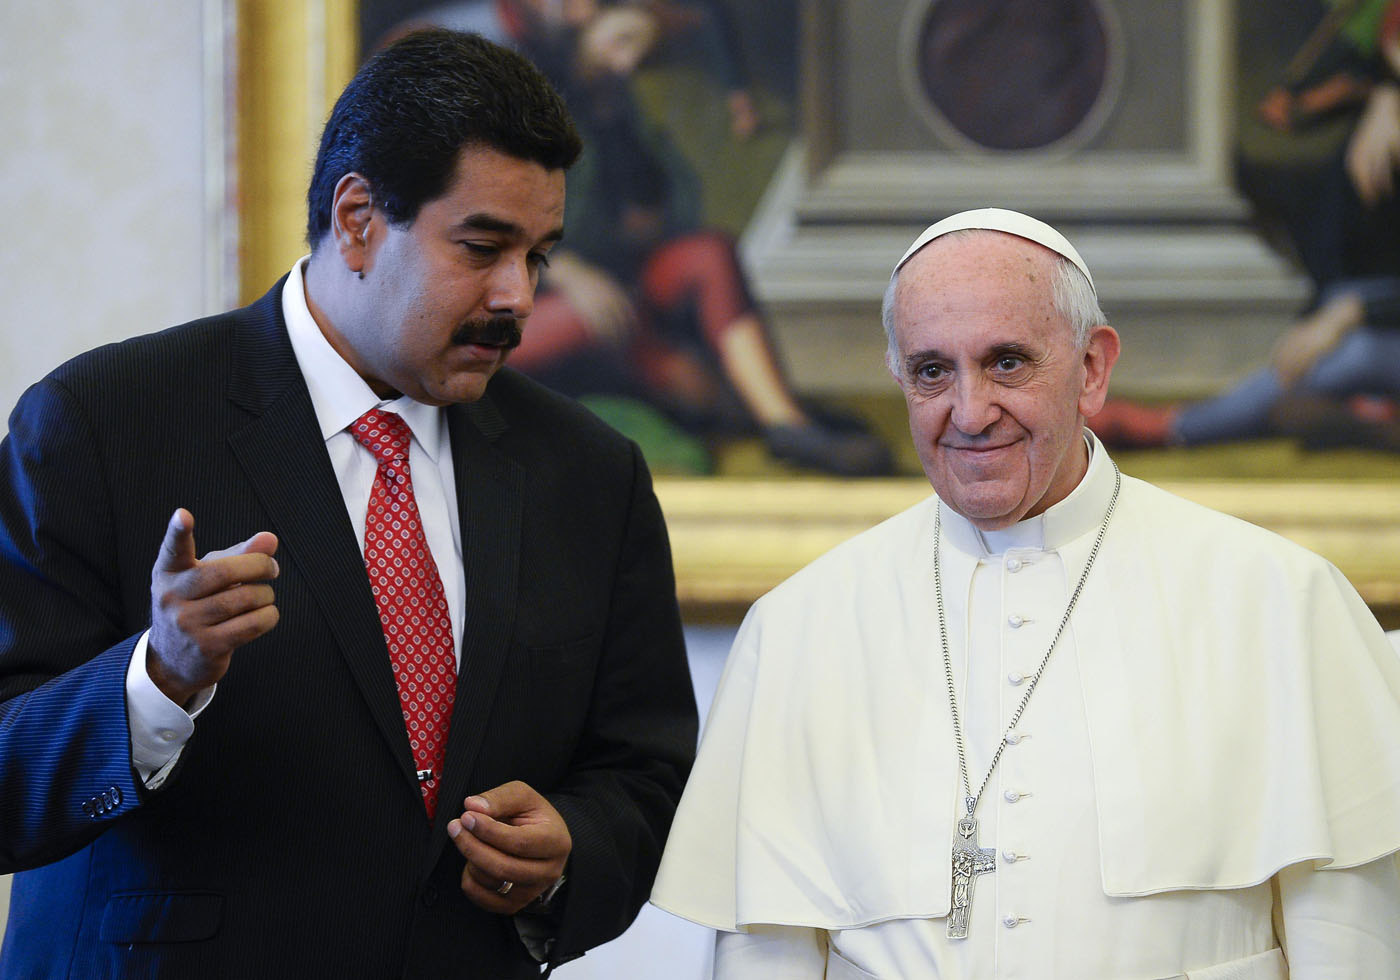 Pope Francis poses with Venezuela's President Nicolas Maduro during a meeting at the Vatican June 17, 2013.   REUTERS/Andreas Solaro/Pool      (VATICAN - Tags: RELIGION POLITICS)